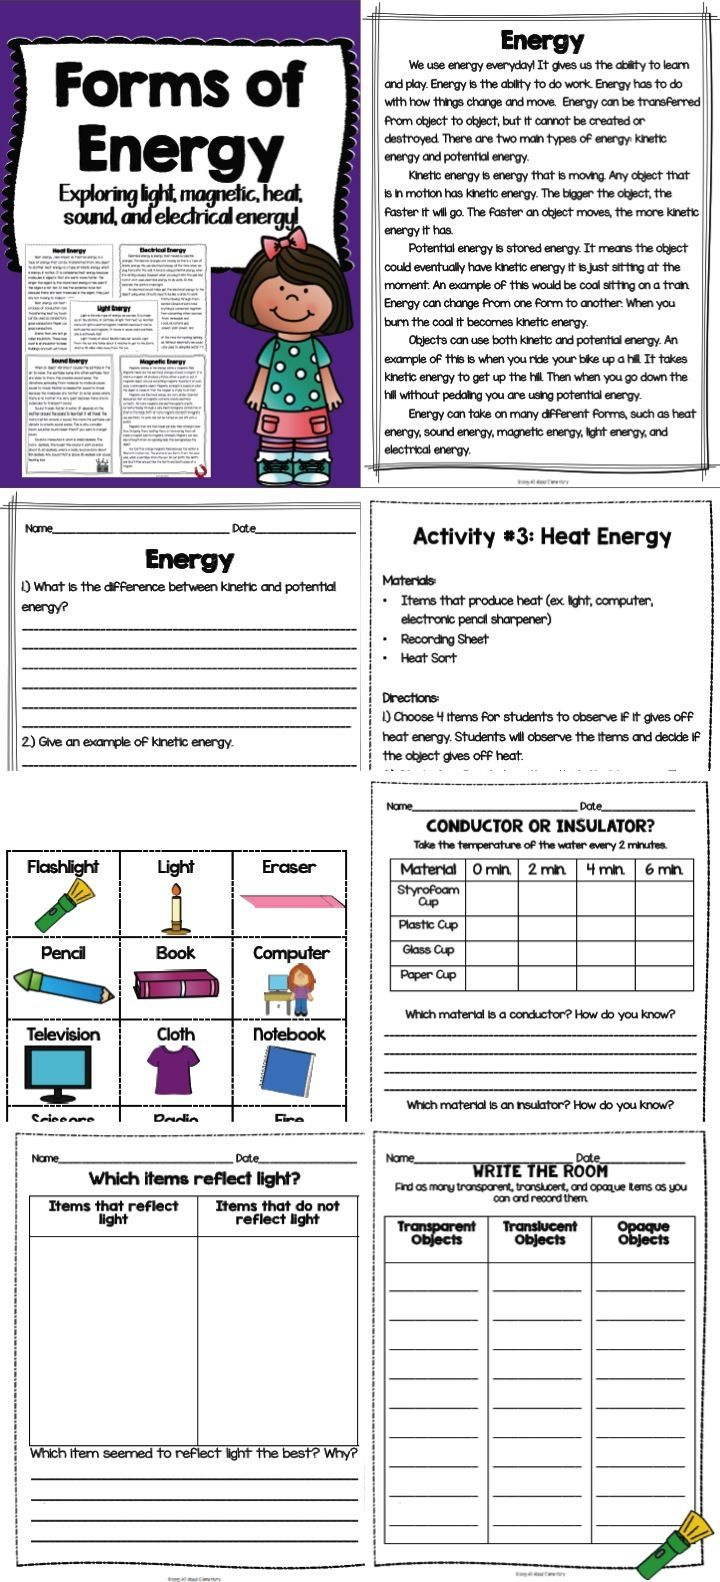 7 Best Forms Of Energy Images On Pinterest Teaching